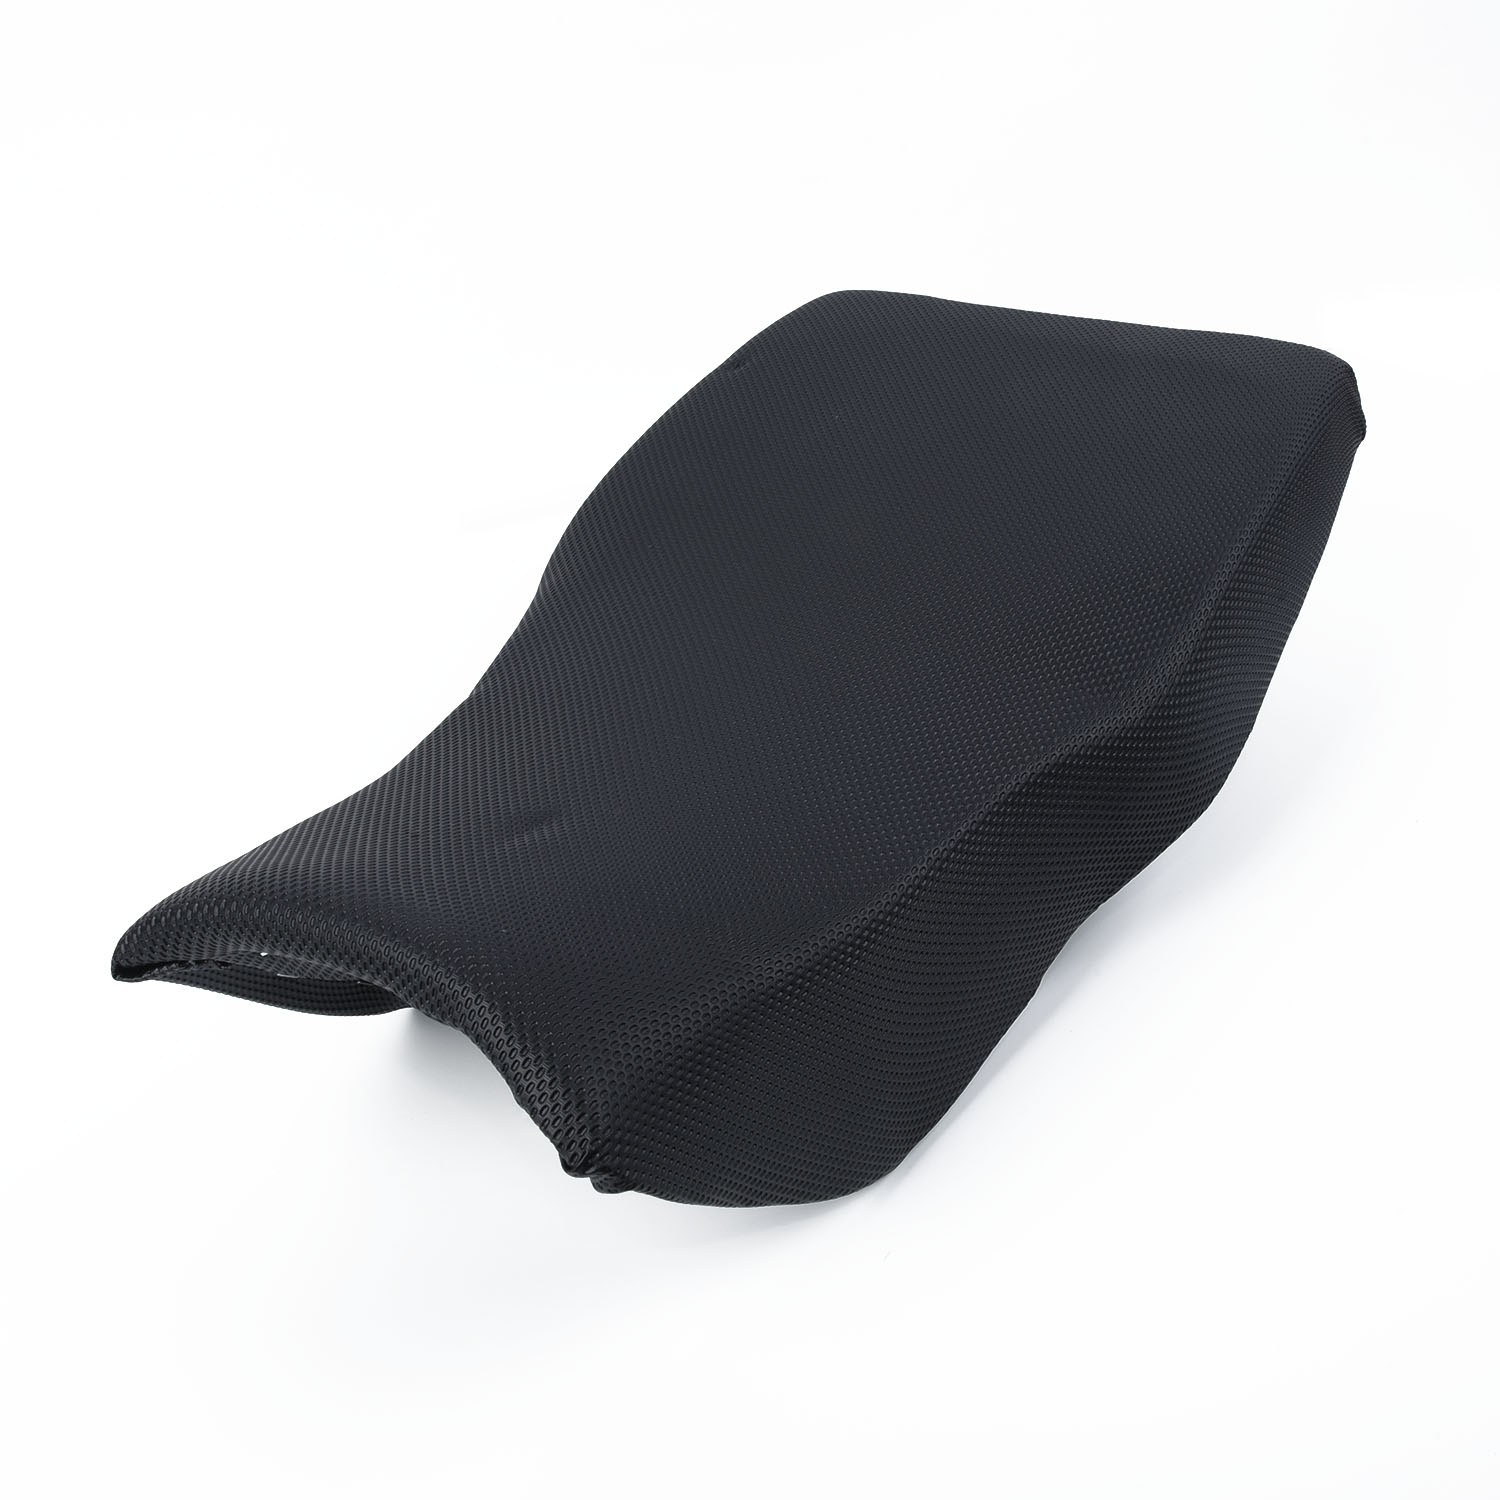 Image 3 - 460*270mm Black Seat Cushion High Quality Accessories for 50CC 70 90 110CC 150CC Chinese ATV SunL Eagle Seat Cushion Protector-in ATV Parts & Accessories from Automobiles & Motorcycles